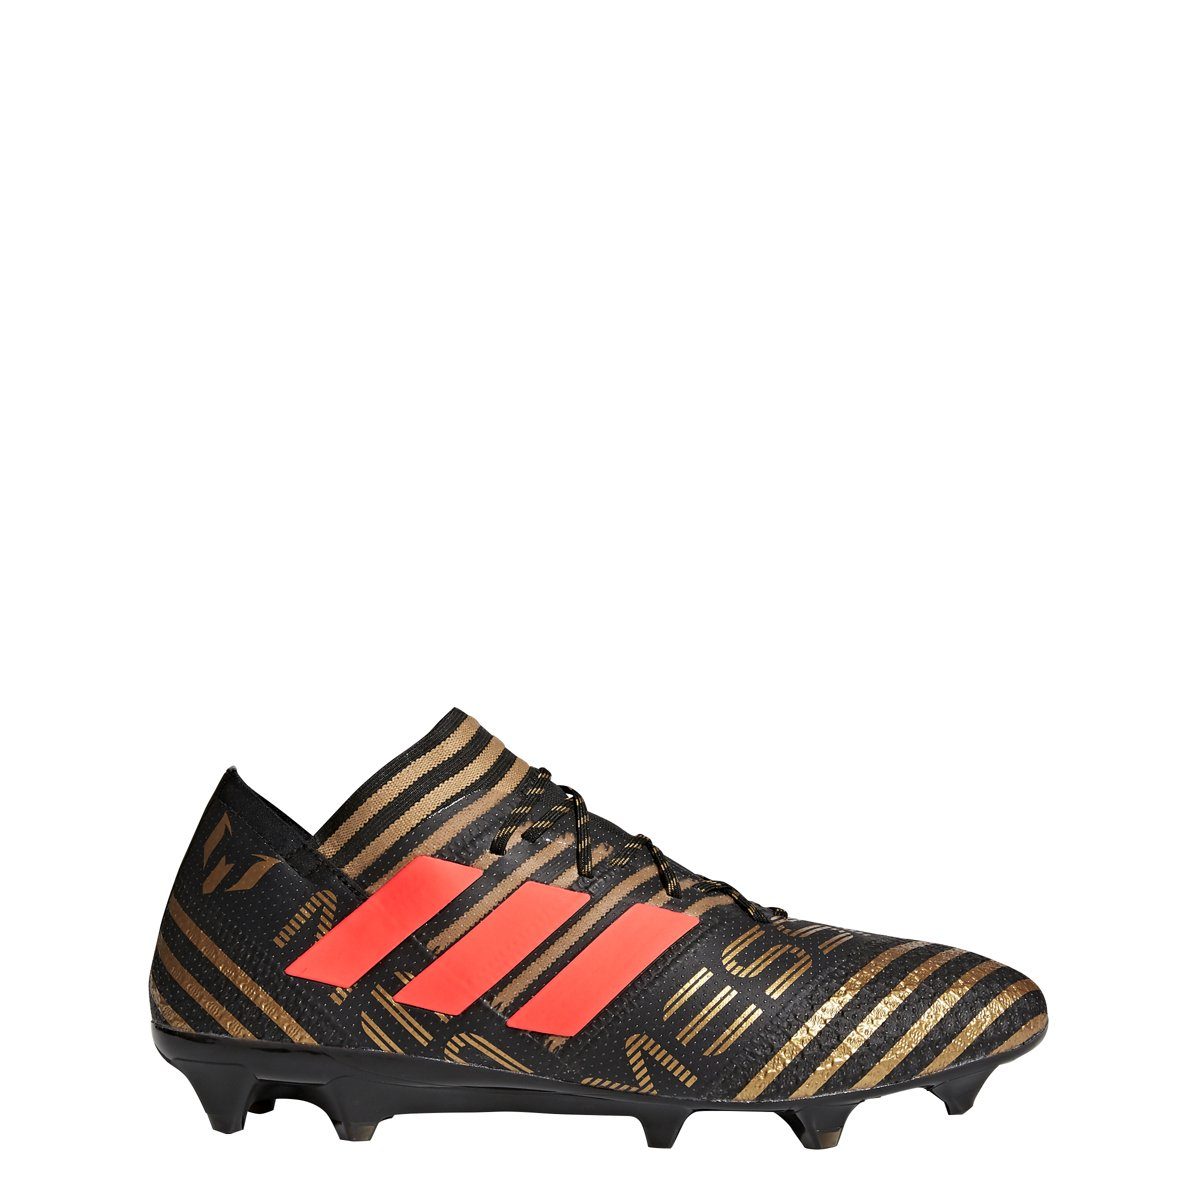 adidas Nemeziz Messi 17.3 FG Cleat Men's Soccer B077XZNLLK 13 D(M) US|Core Black-solar Red-gold